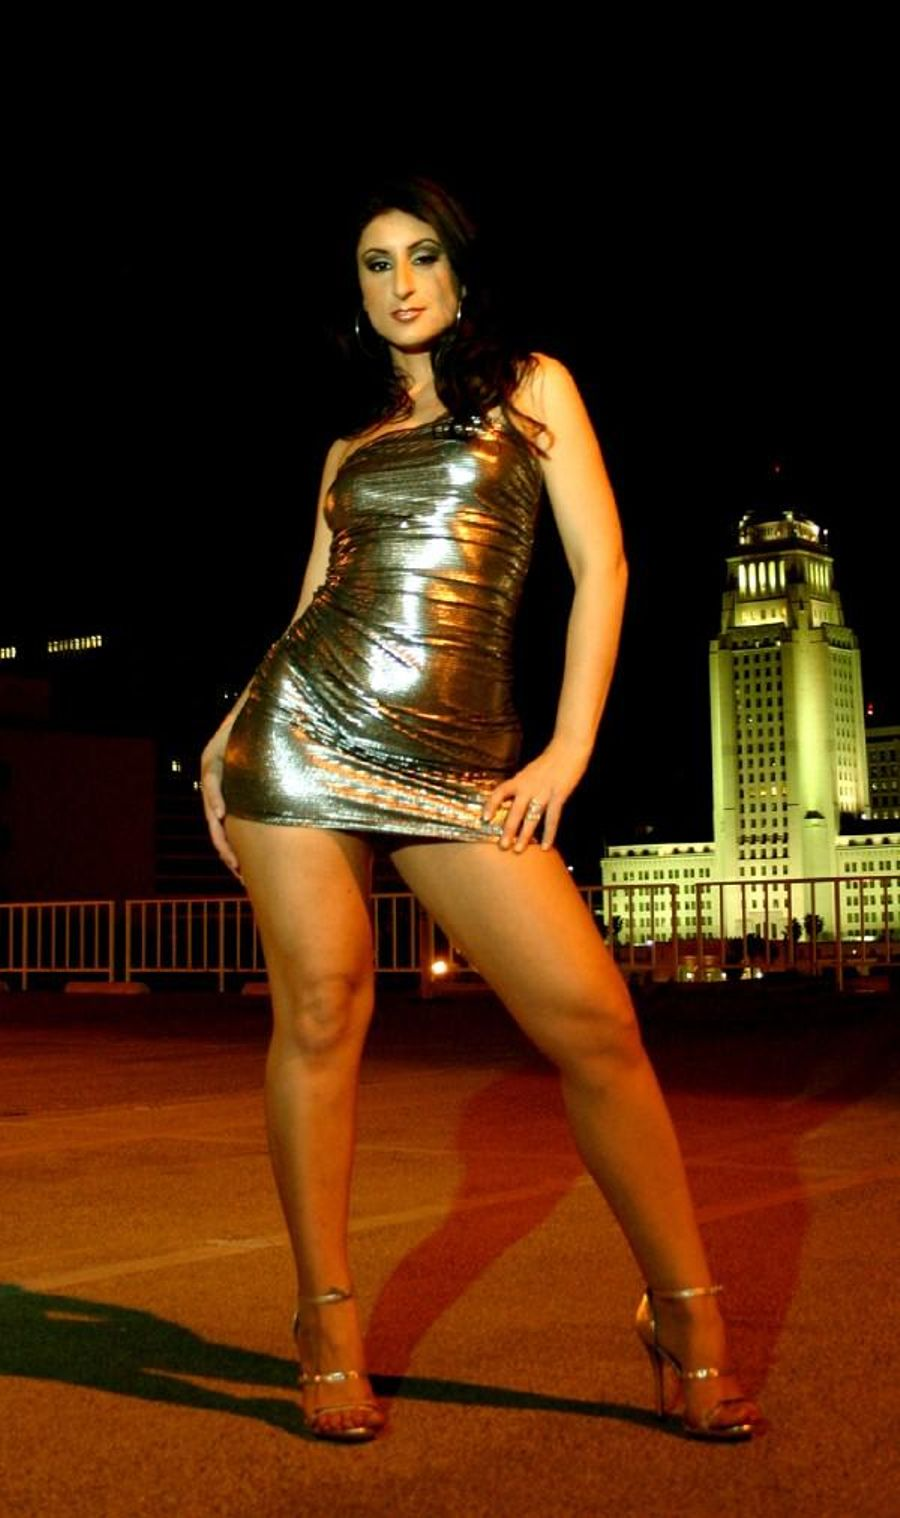 Luscious Lopez on high heels gets her body explored by a professional № 818097 без смс